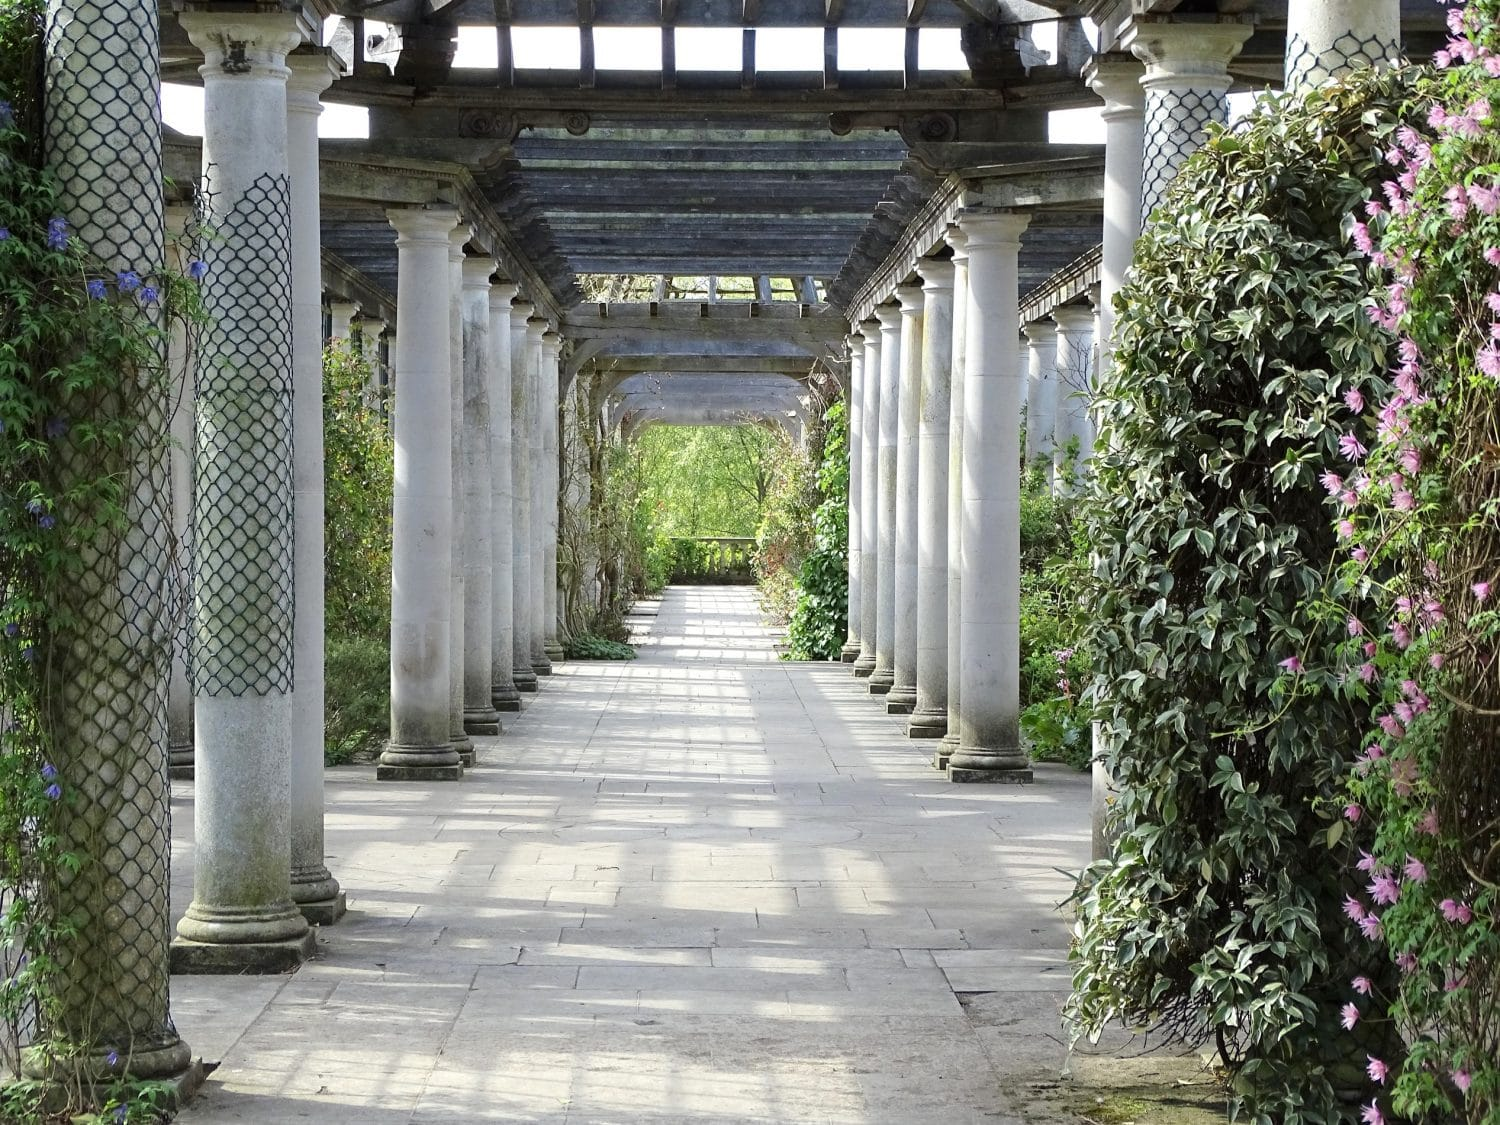 Visit the romantic Hill Garden and Pergola in leafy Hampstead